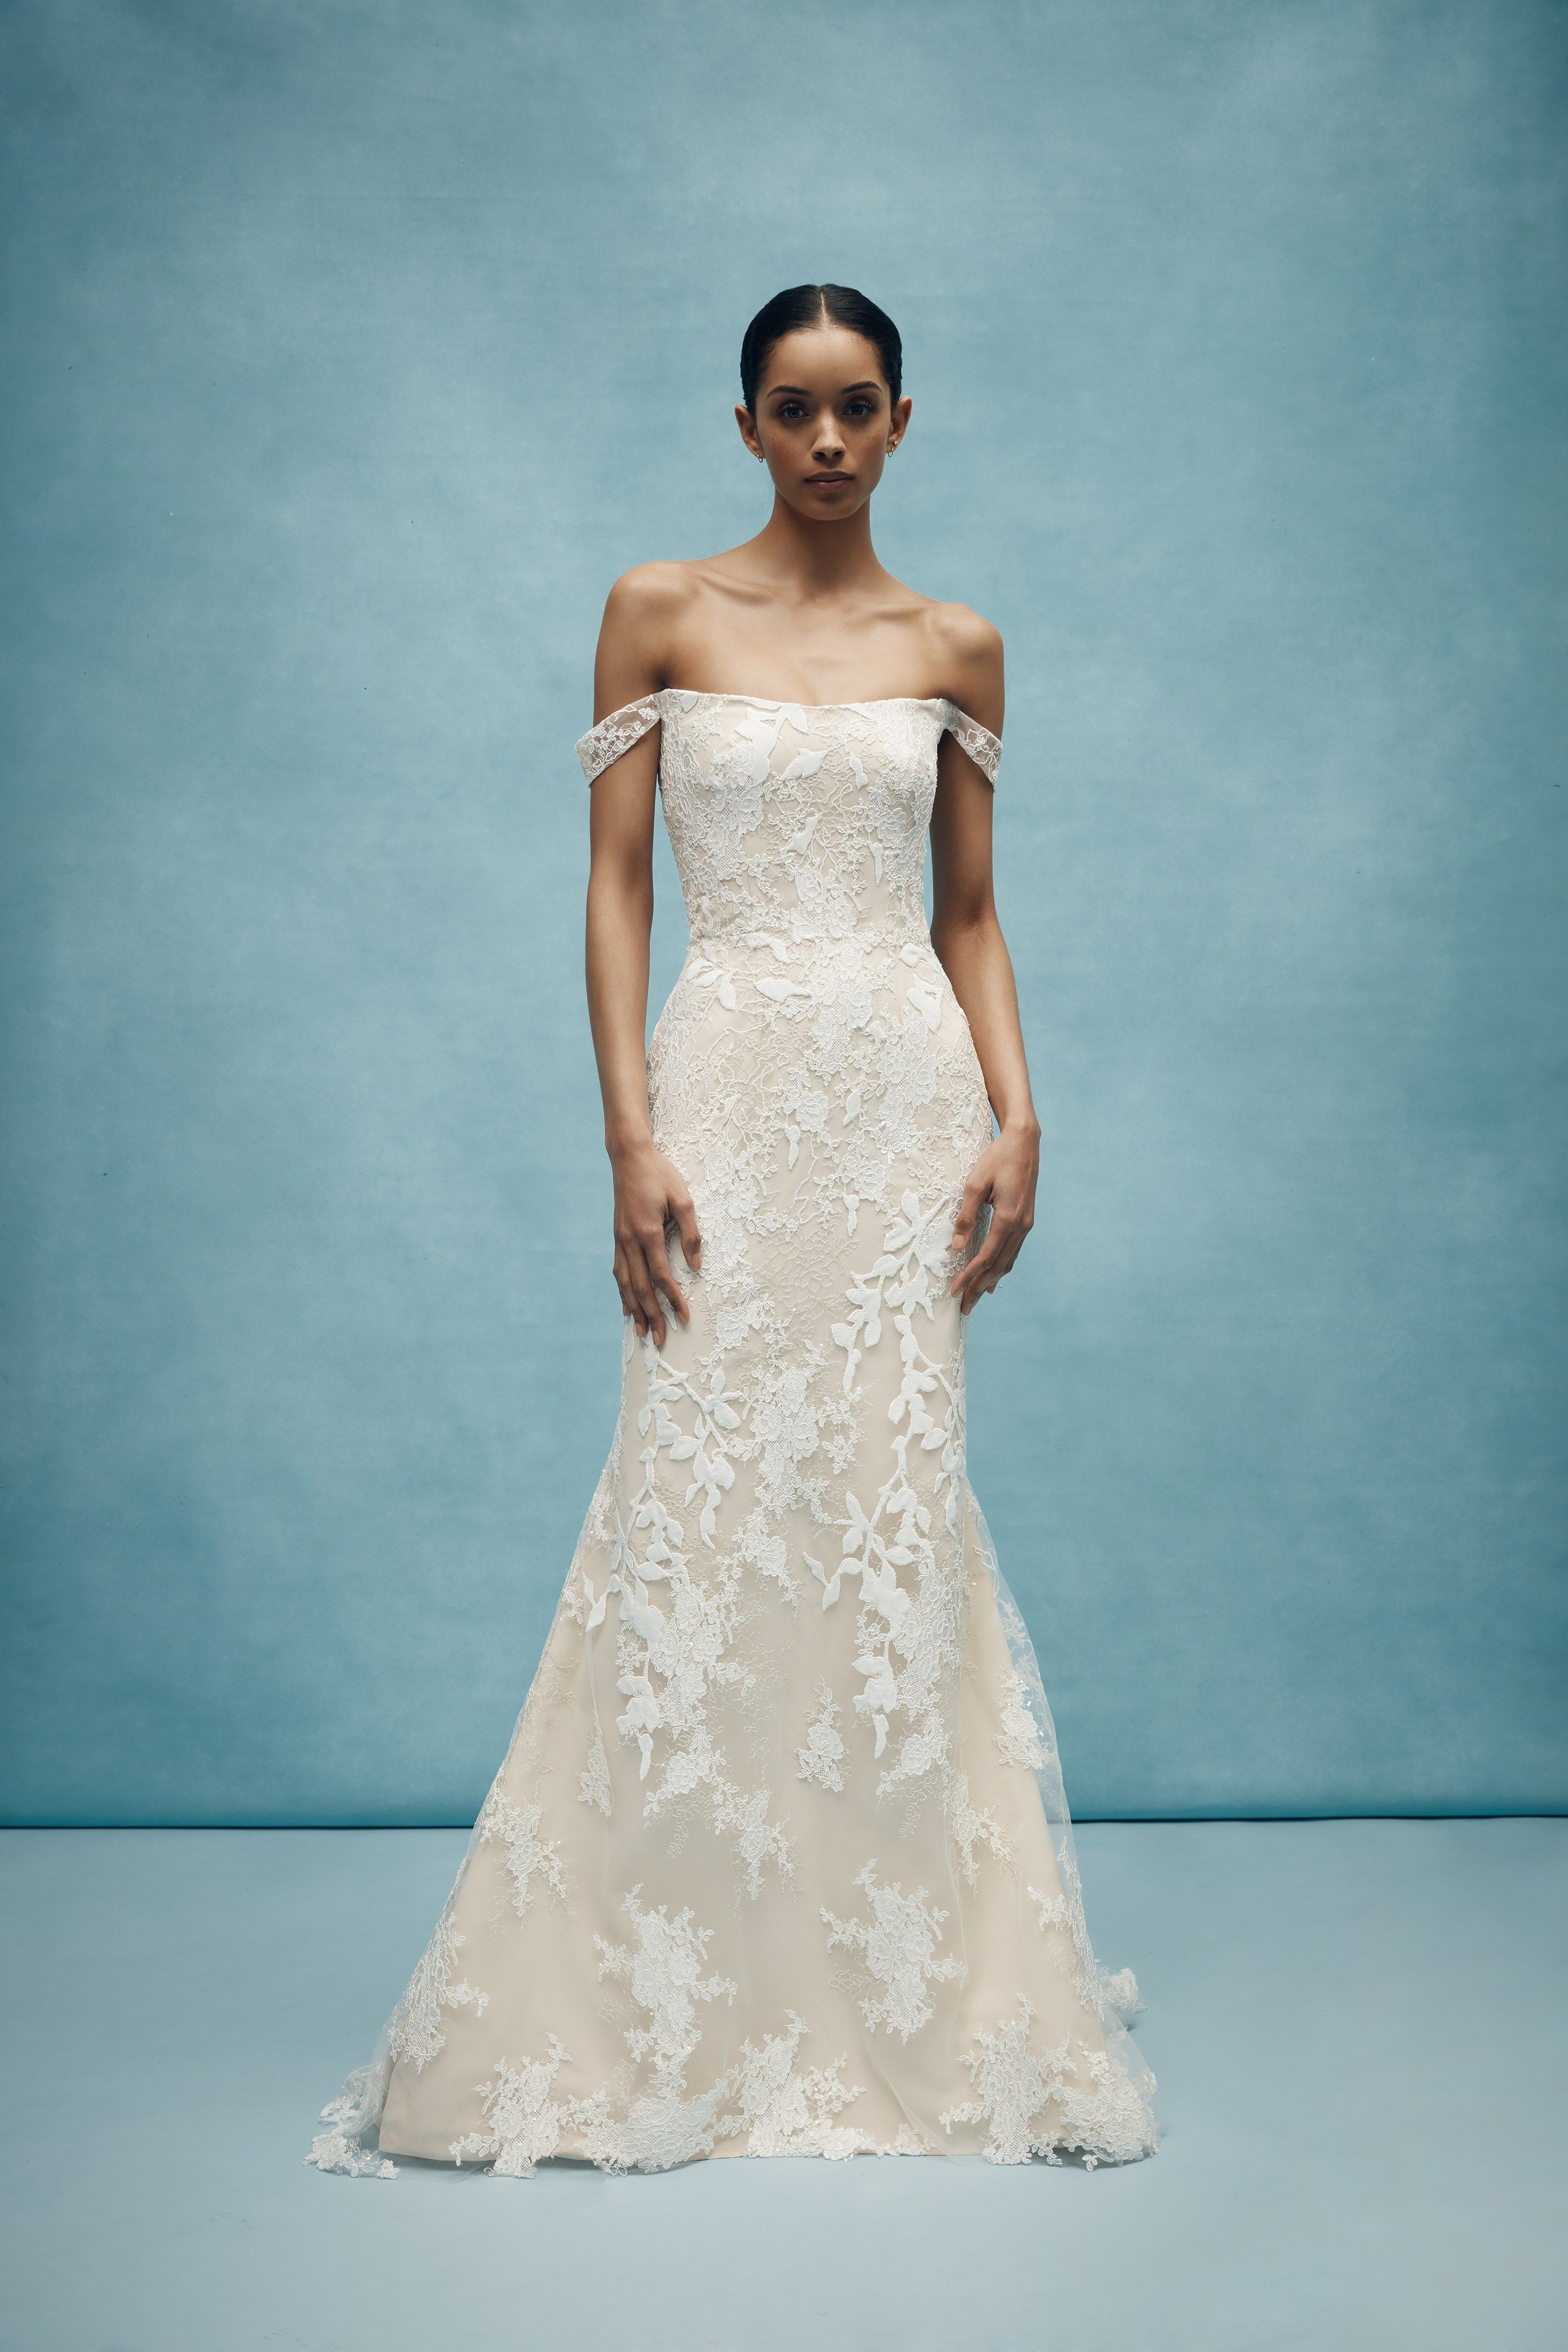 96931a090ce27 Anne Barge Bridal Spring 2020 Fashion Show in 2019 Fave